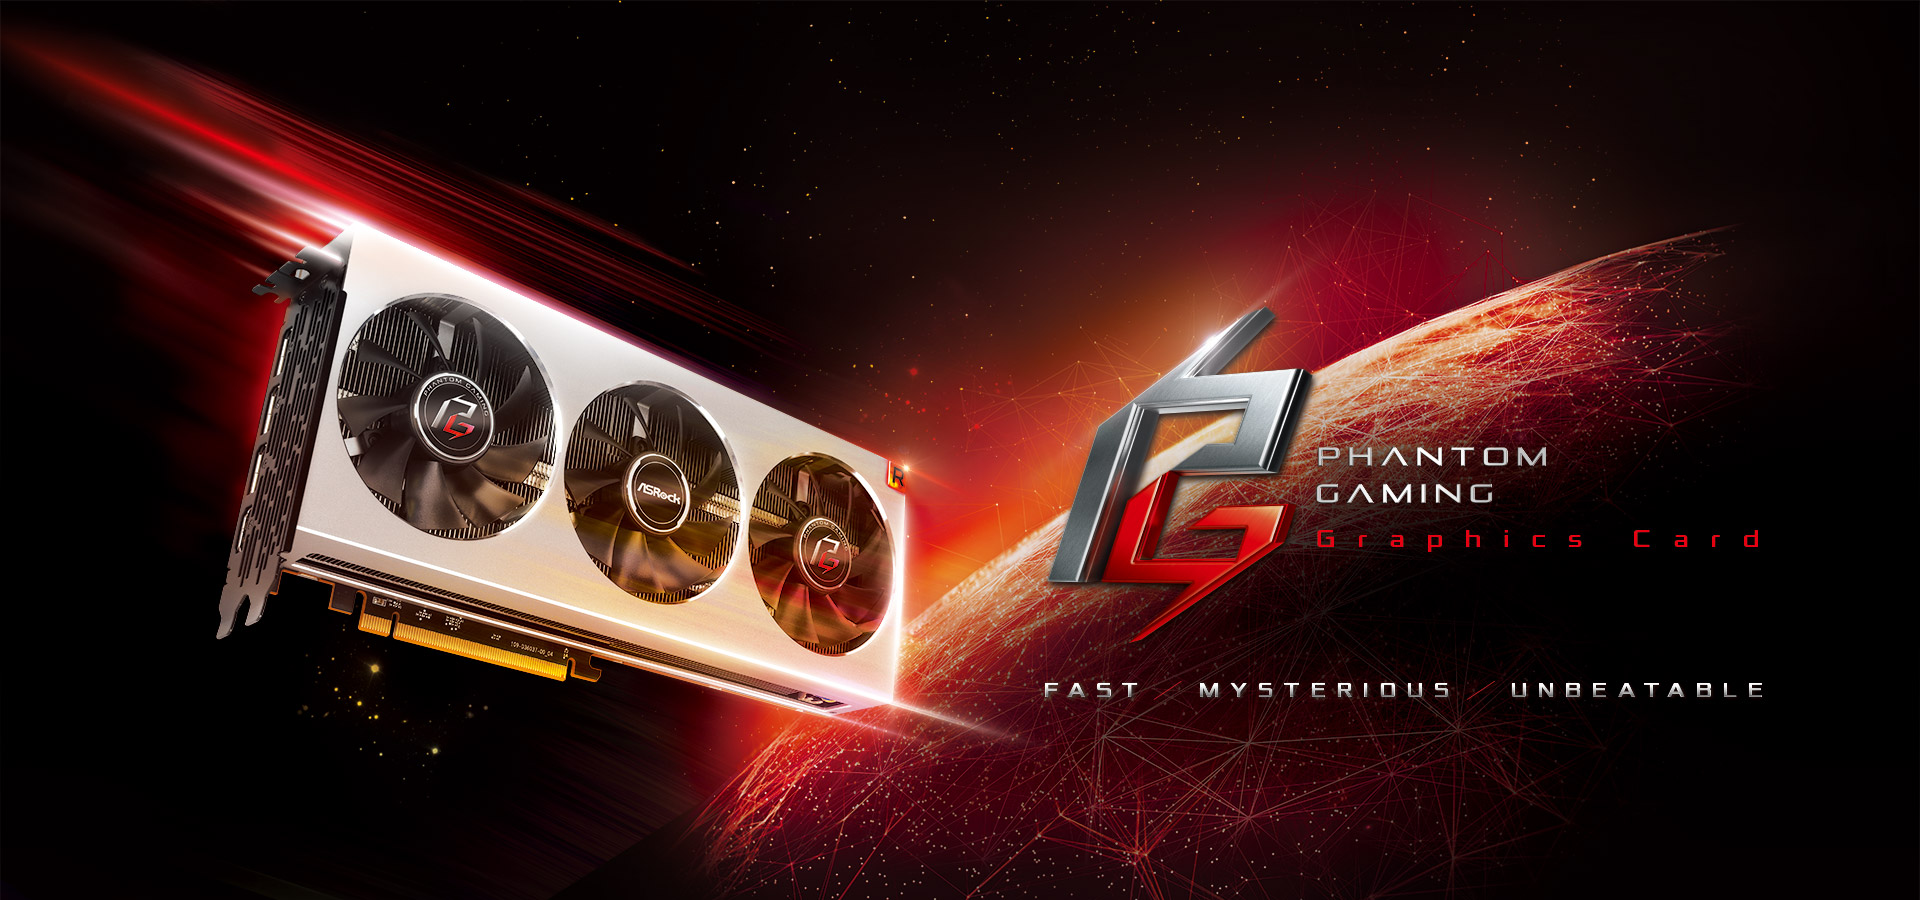 ASRock Phantom Gaming Graphics Card banner showing the graphics card approaching a planet from space